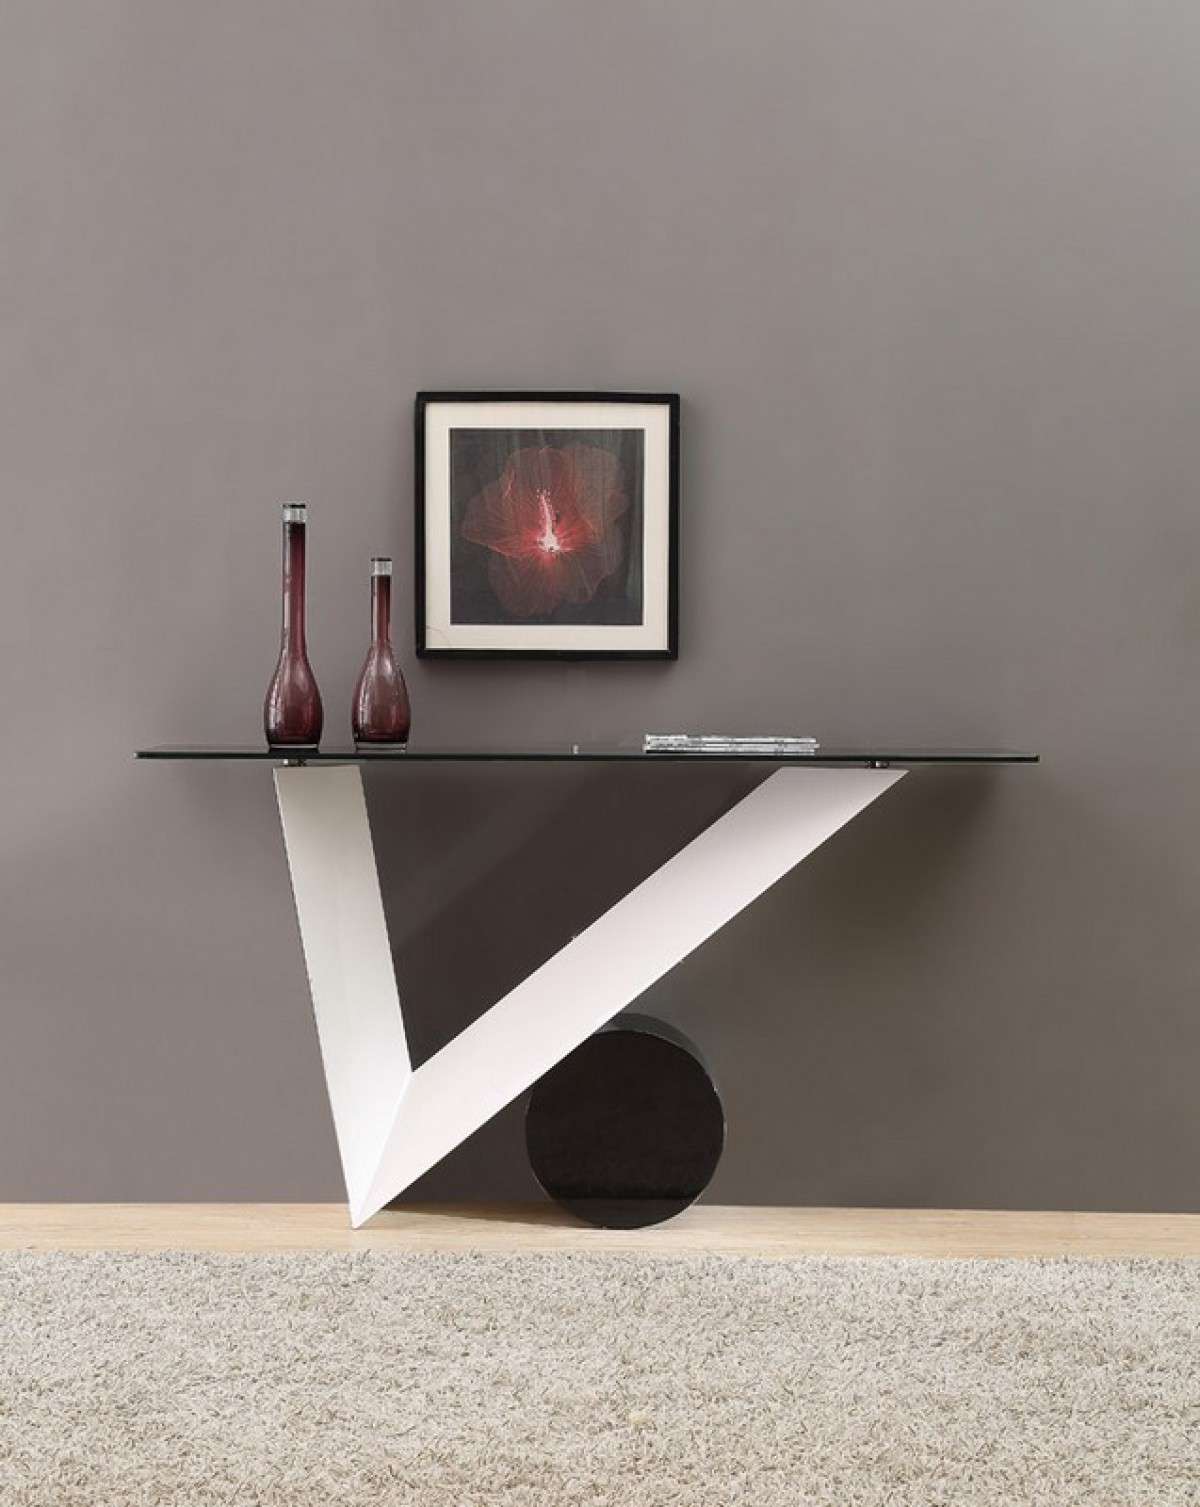 console tables 10 Console Tables With An Exquisite Geometric Design 7 10 Console Tables With An Exquisite Geometric Design